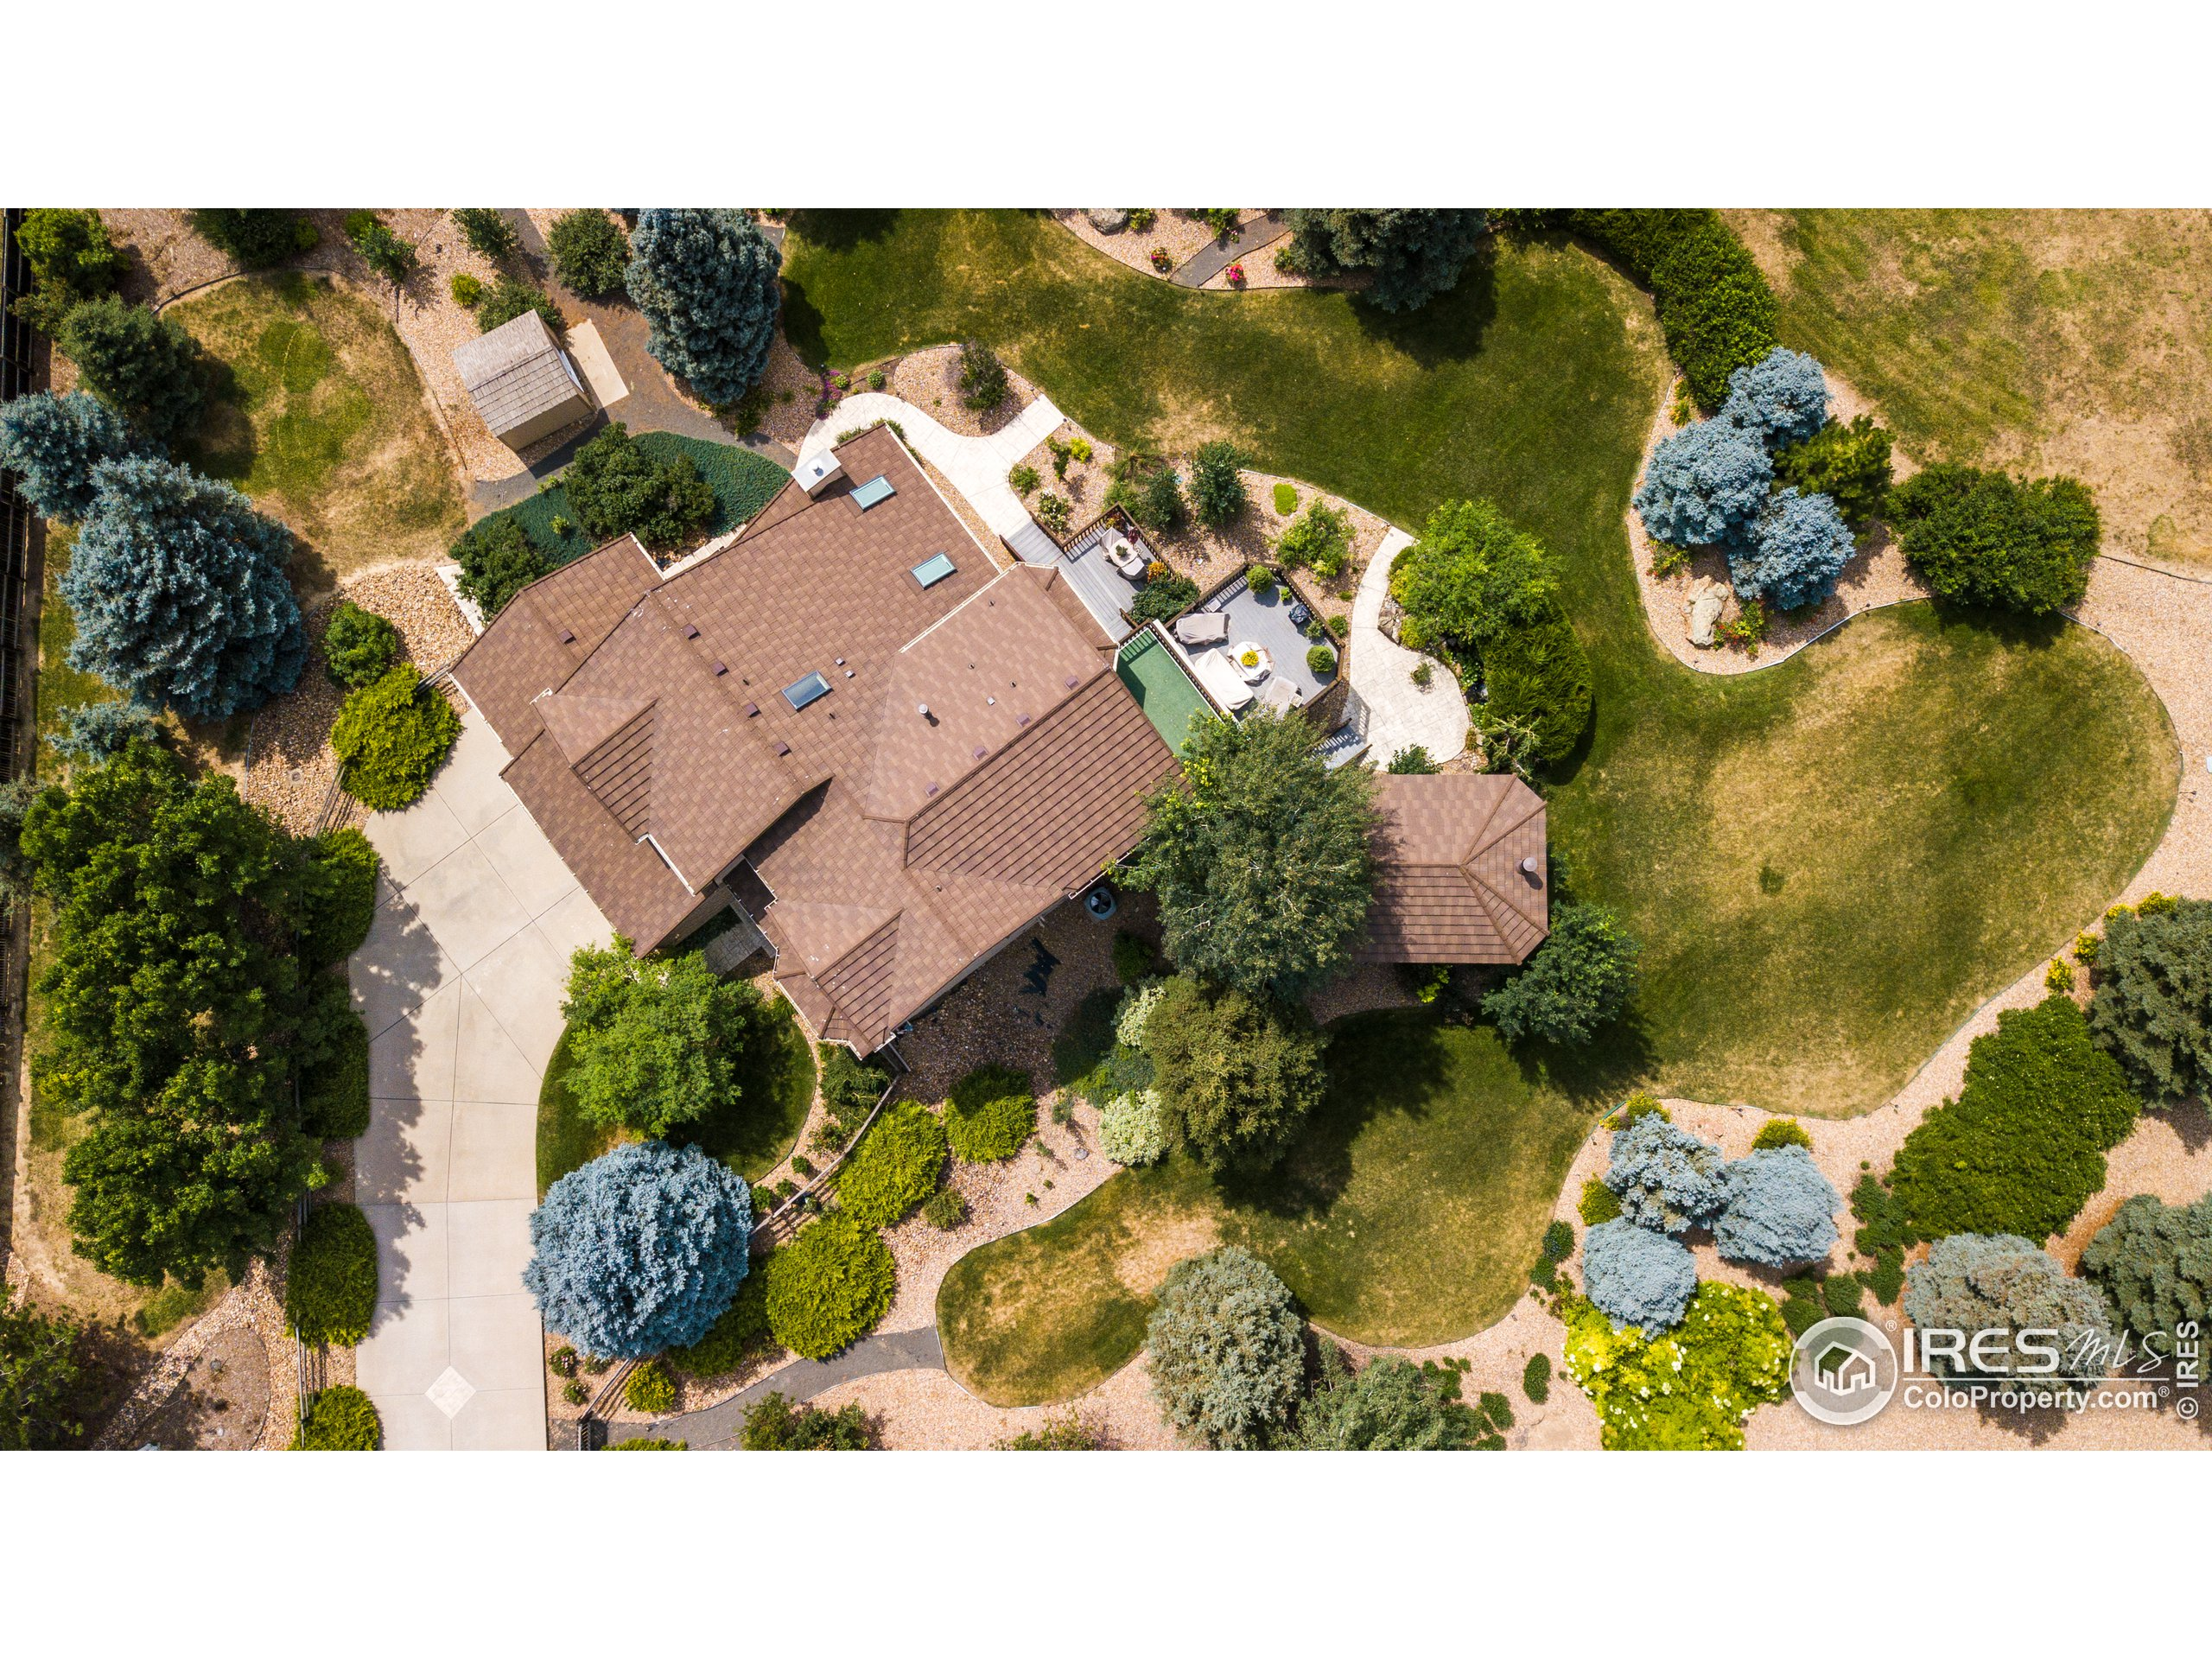 Bird's eye view really captures this property